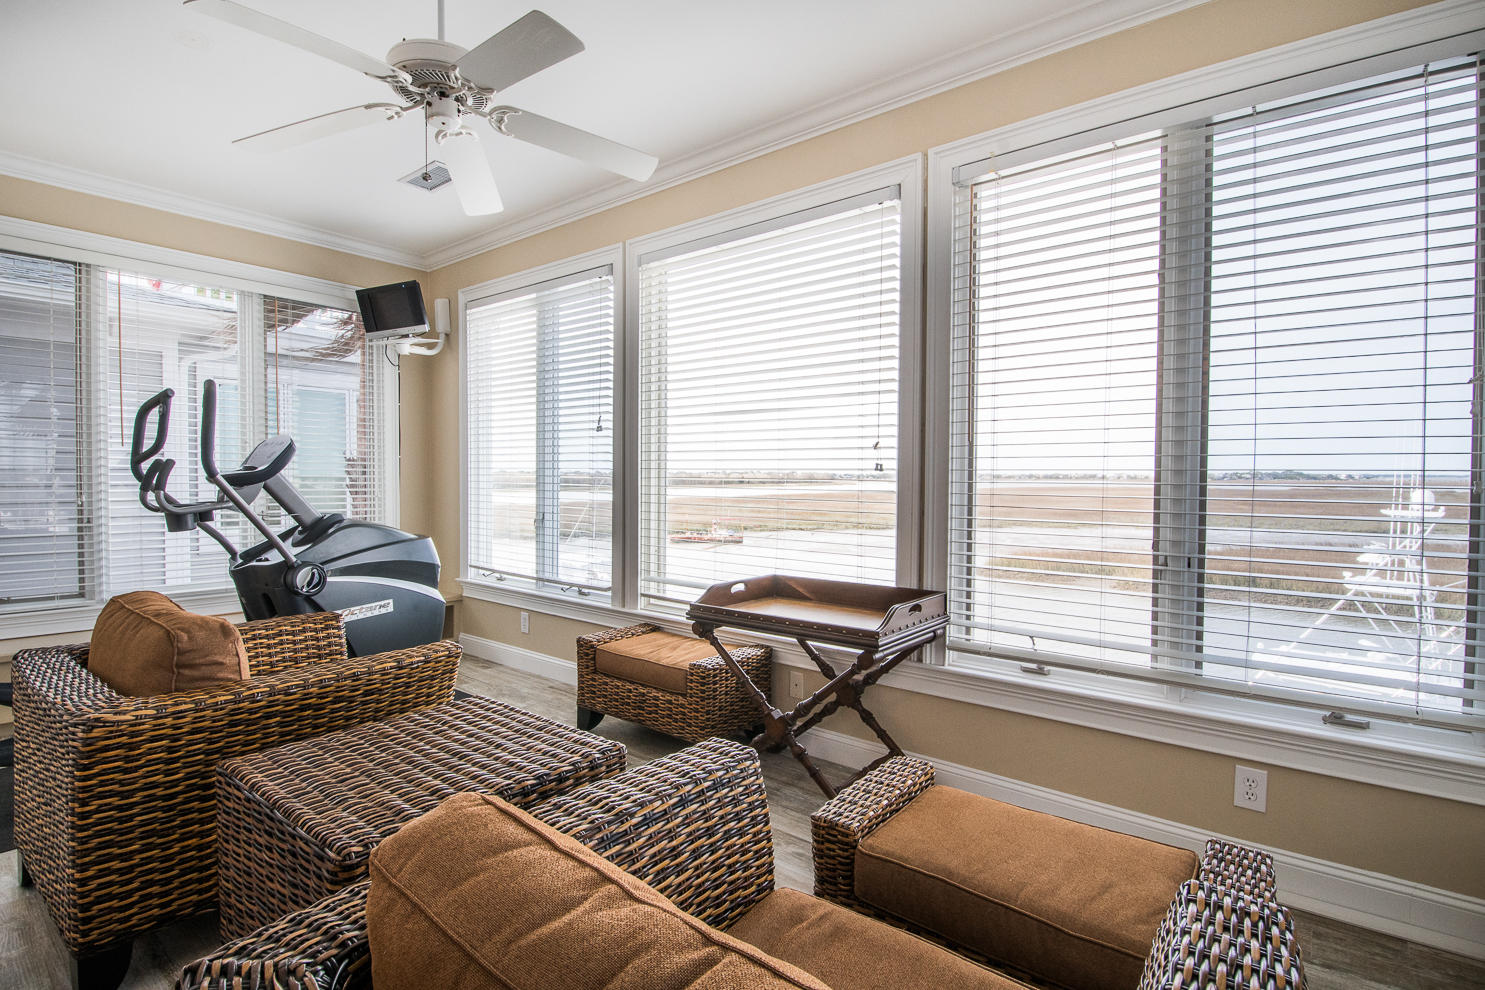 Tolers Cove Homes For Sale - B-4 & B-5 Tolers Cove Marina 70ft + Home, Mount Pleasant, SC - 14